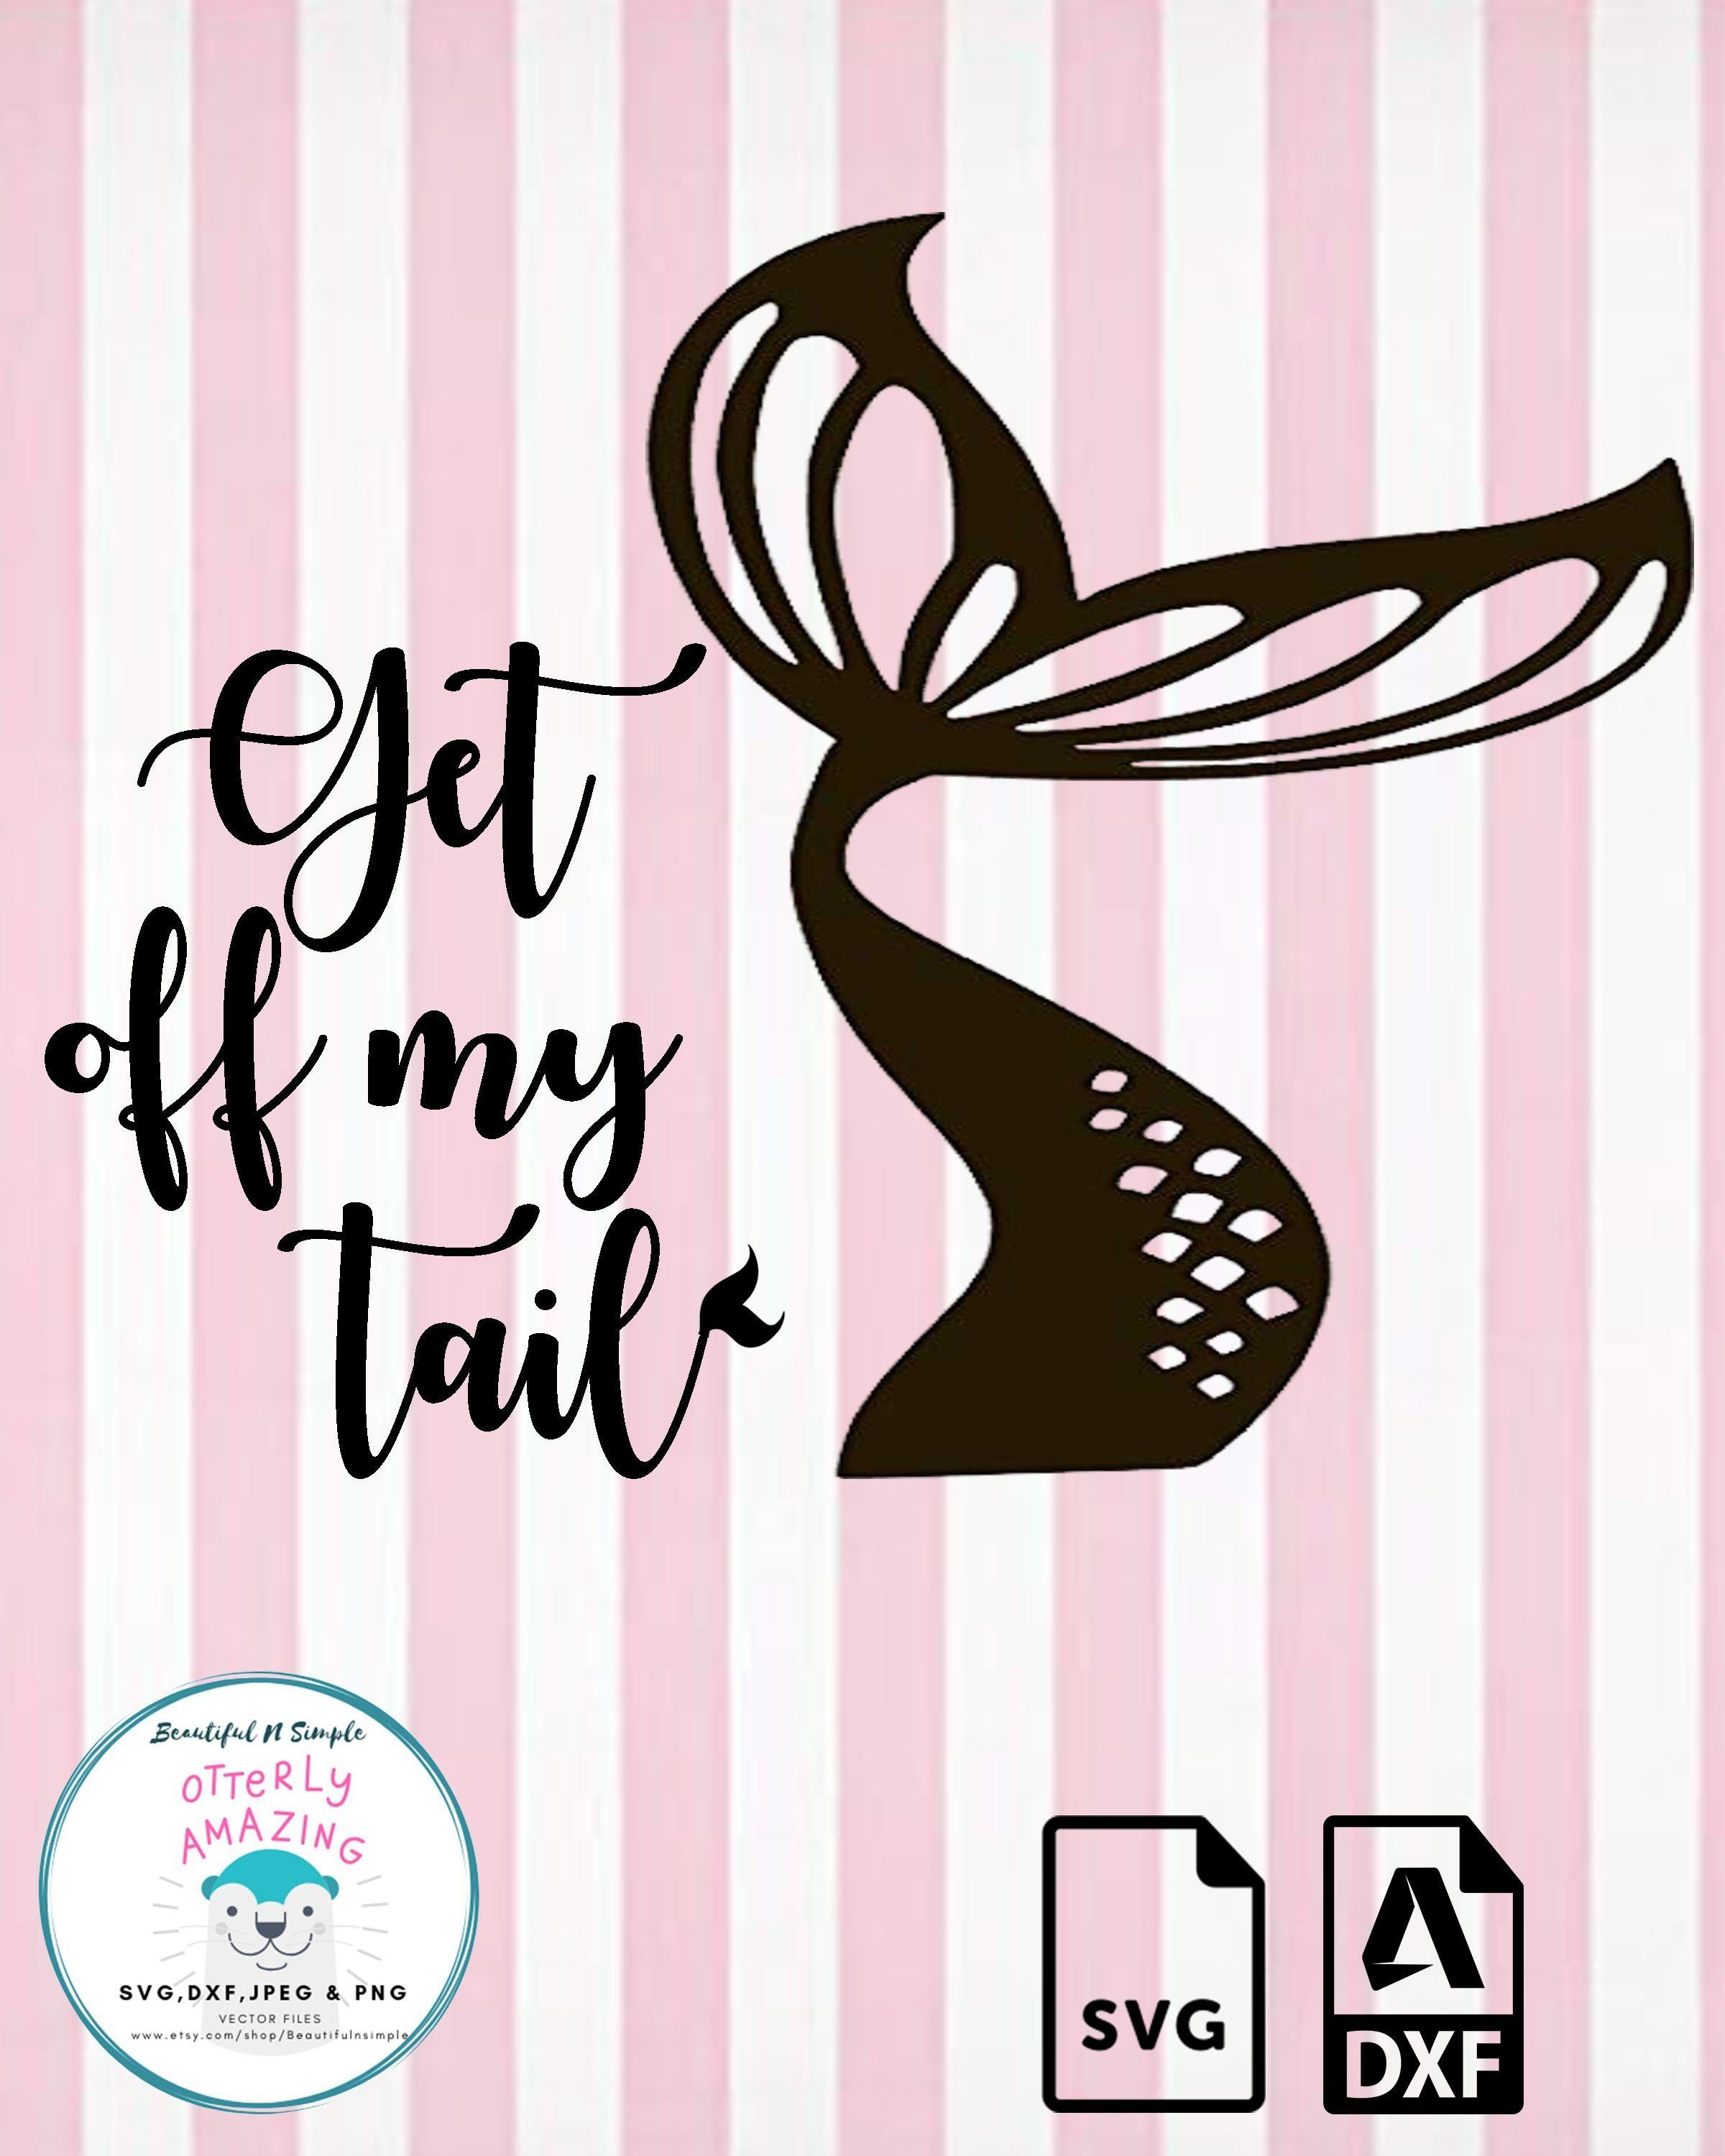 Get Off My Tail, Mermaid SVG and DXF File, Mermaid Tail